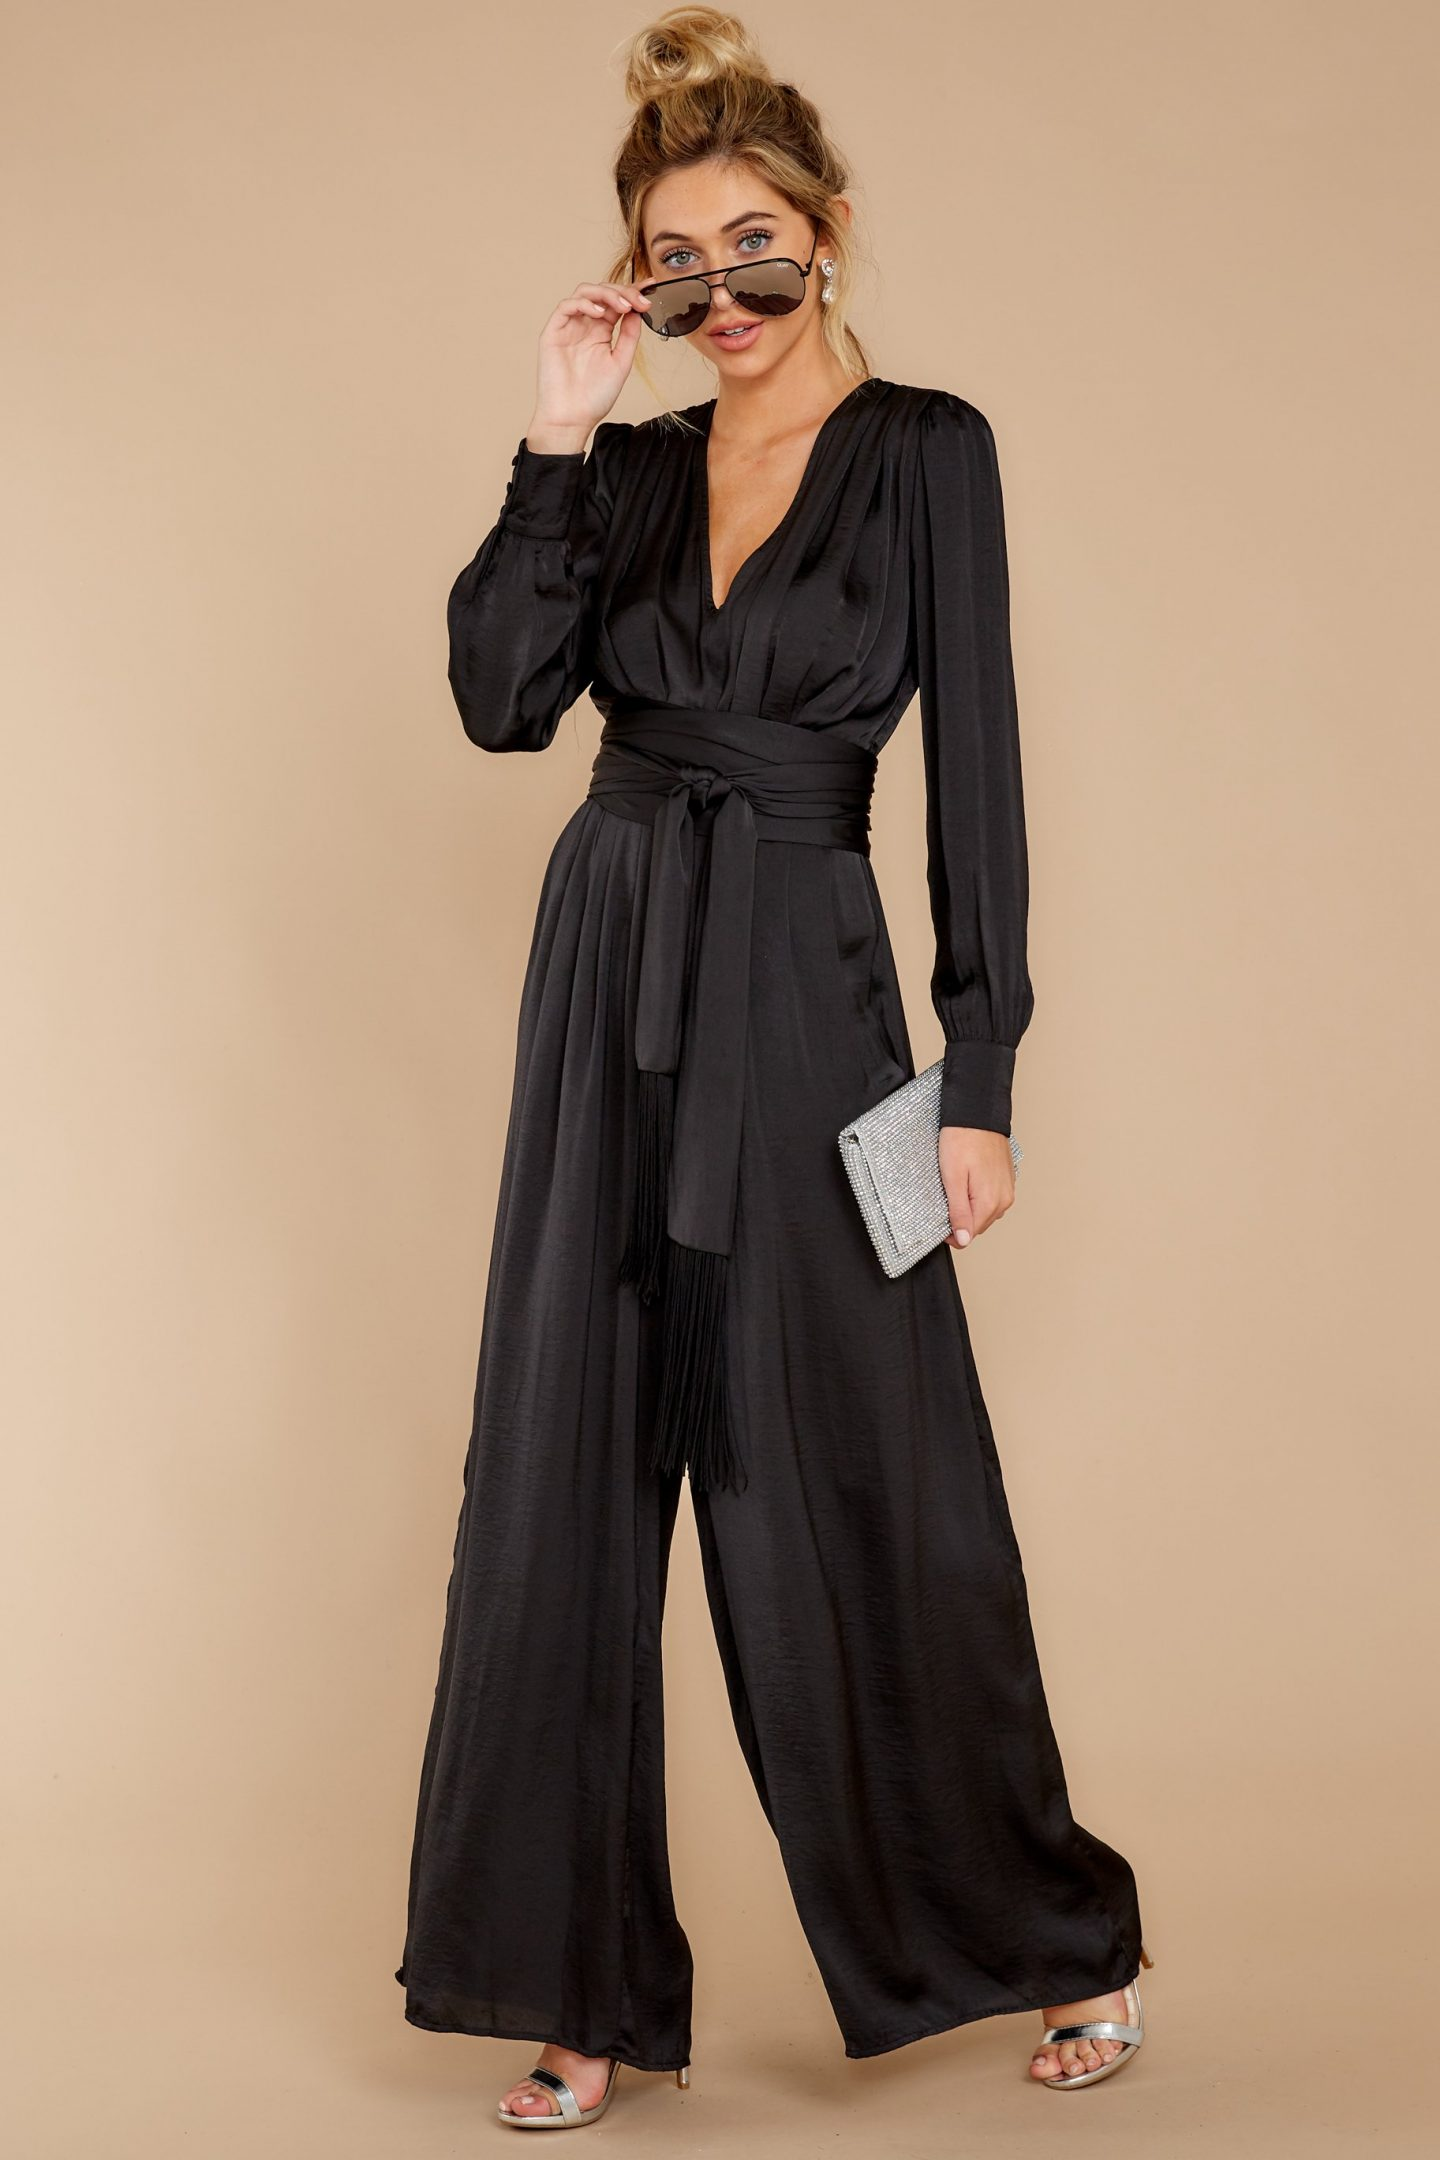 Black satin jumpsuit with long sleeves